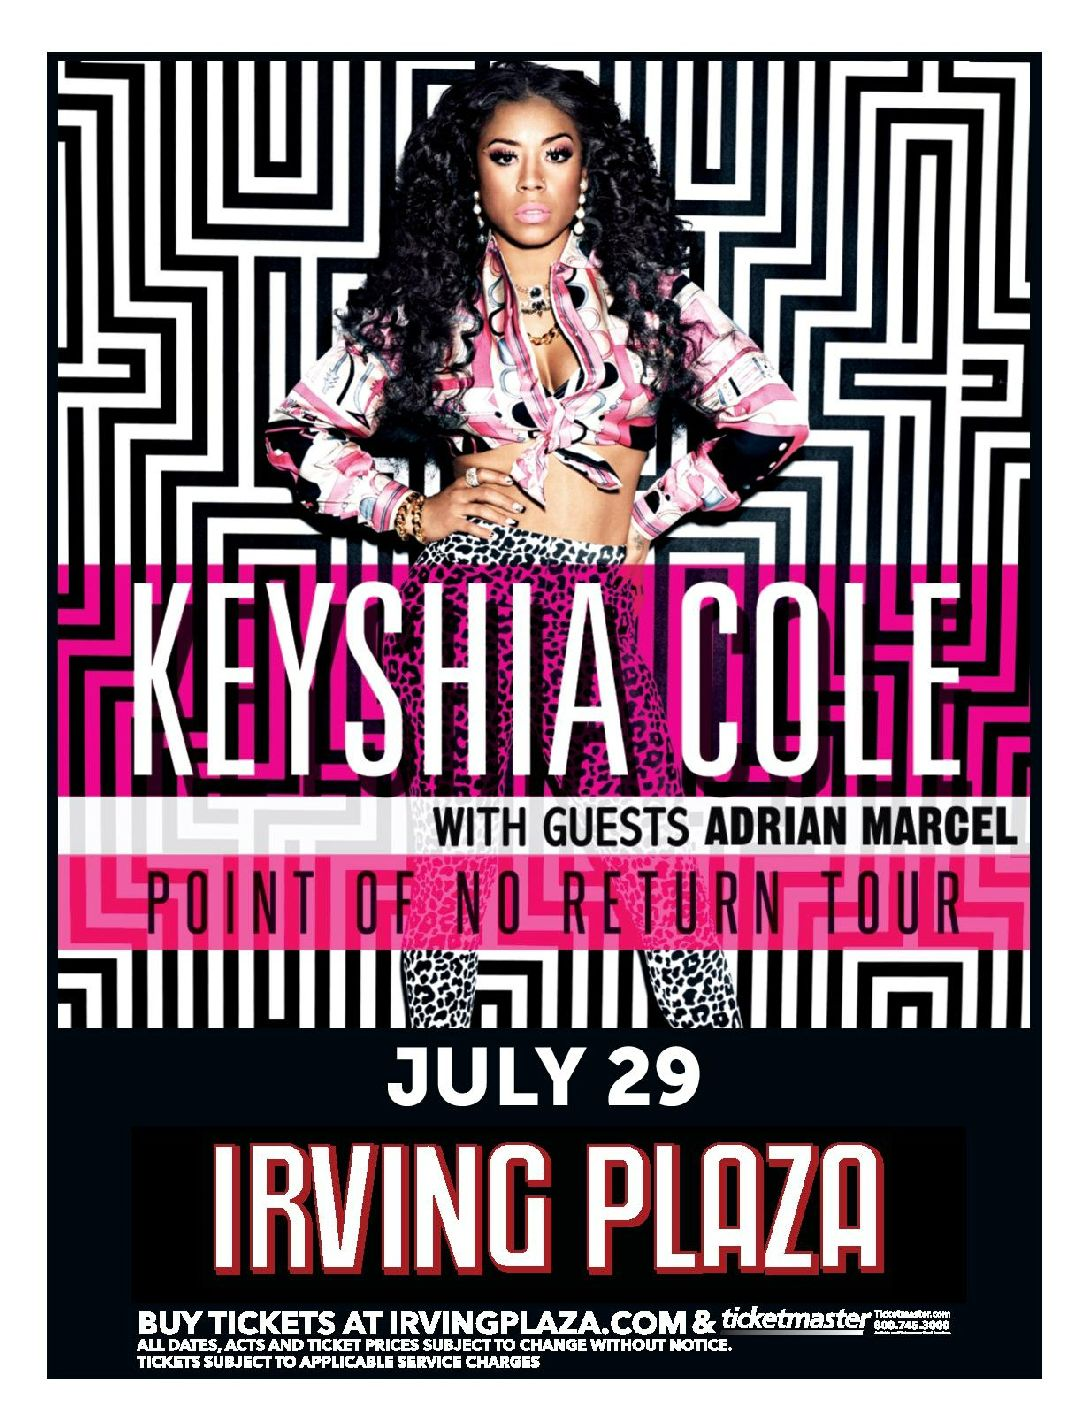 Keyshia Cole 4UP page 001 Giveaway: Win Tickets to See Keyshia Cole & Adrian Marcel in NYC on 7/29